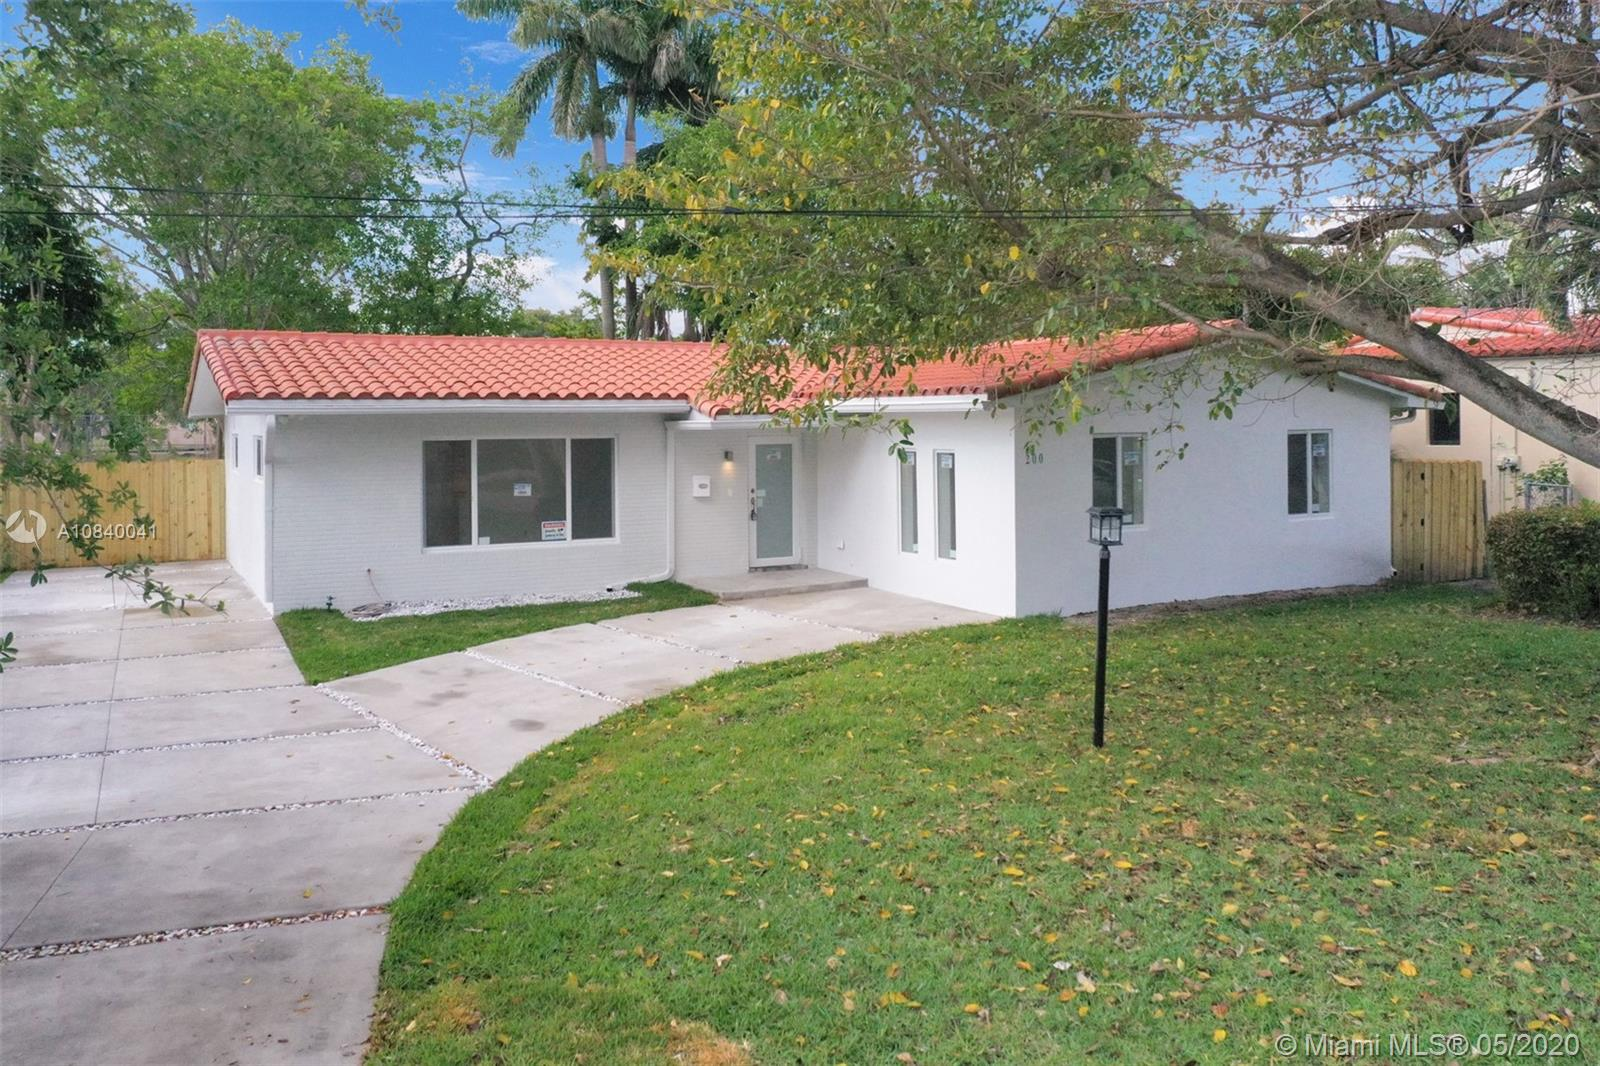 200 NW 86th St, Miami Shores, Florida